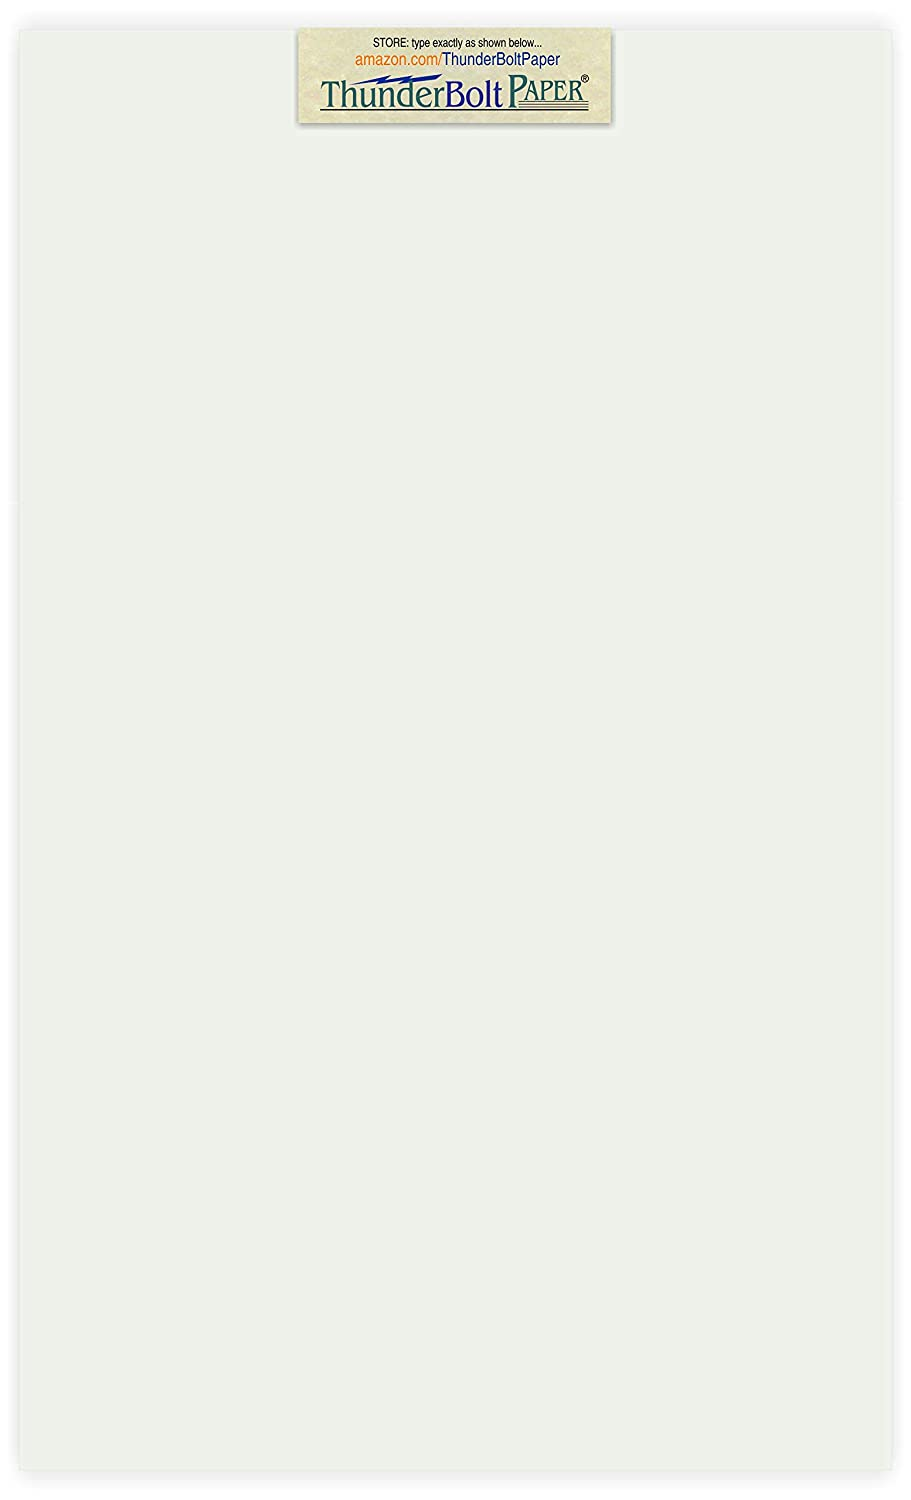 8.5X14 Inches 8.5 X 14 17 lb//pound Light Weight Fine Quality Paper Tracing Fun or Formal Use Legal Menu Size 25 Soft Off-White Translucent 17# Thin Sheets Not a Clear Transparent